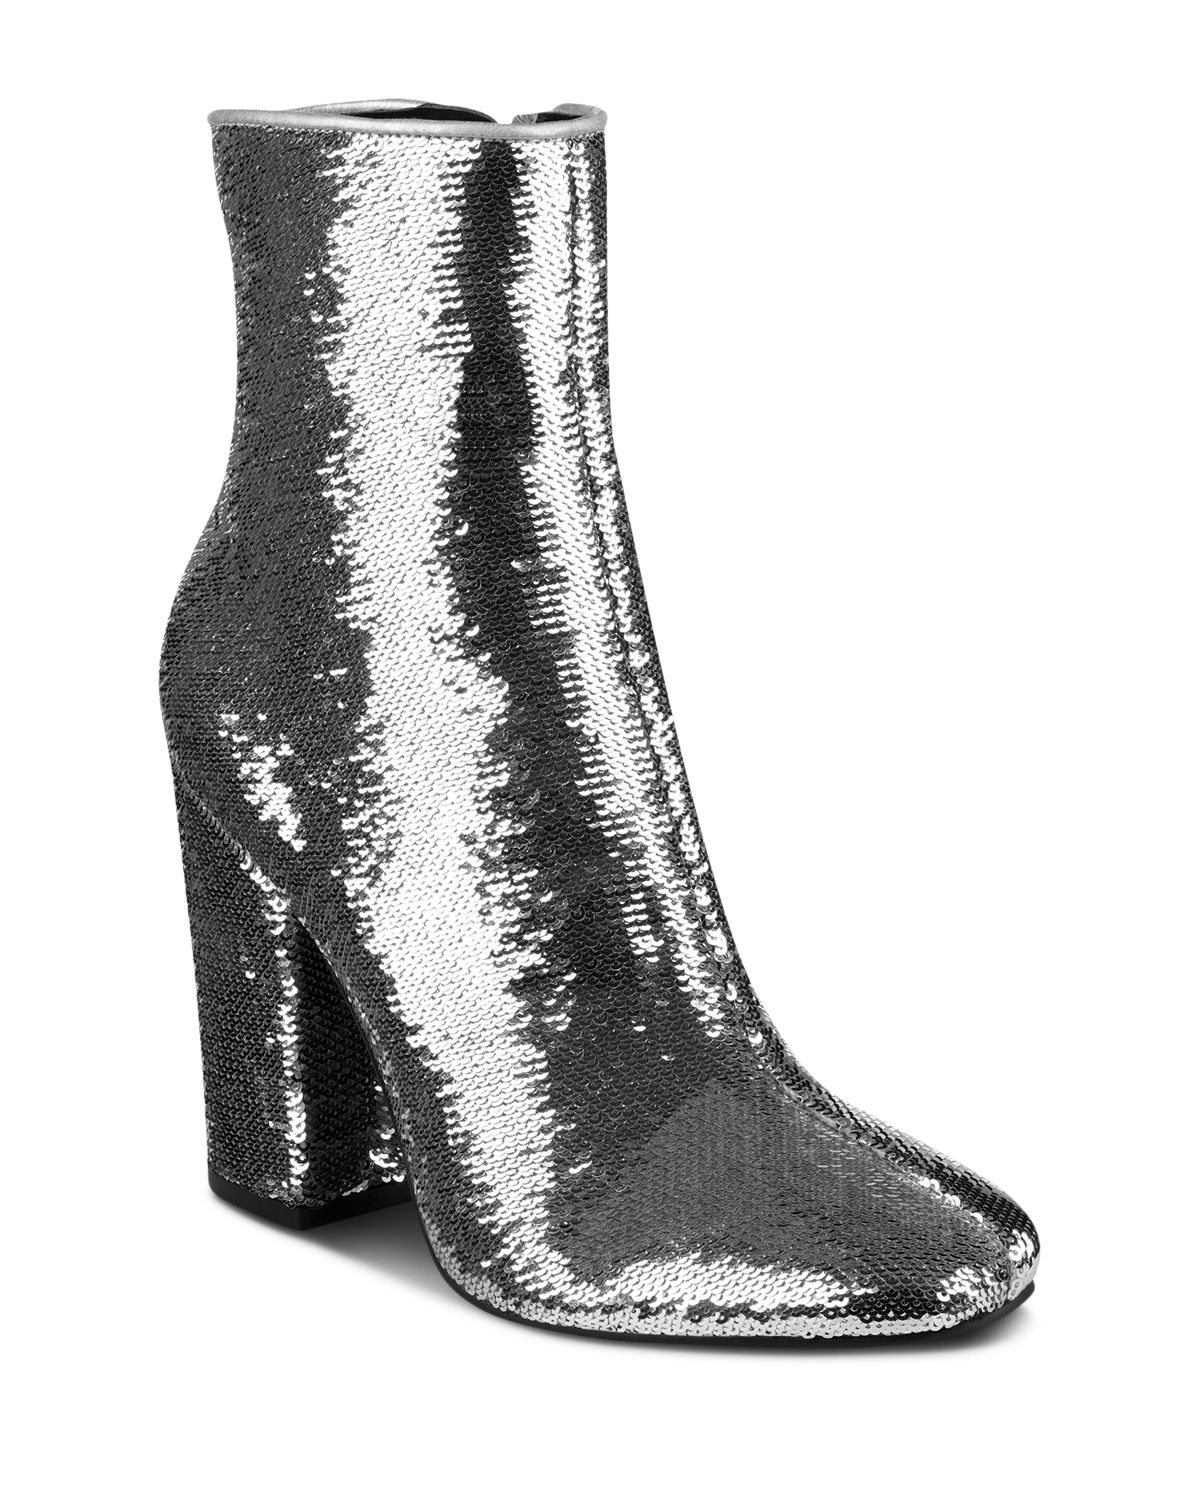 Kendall And Kylie Women's Haedyn Sequined High Block Heel Booties